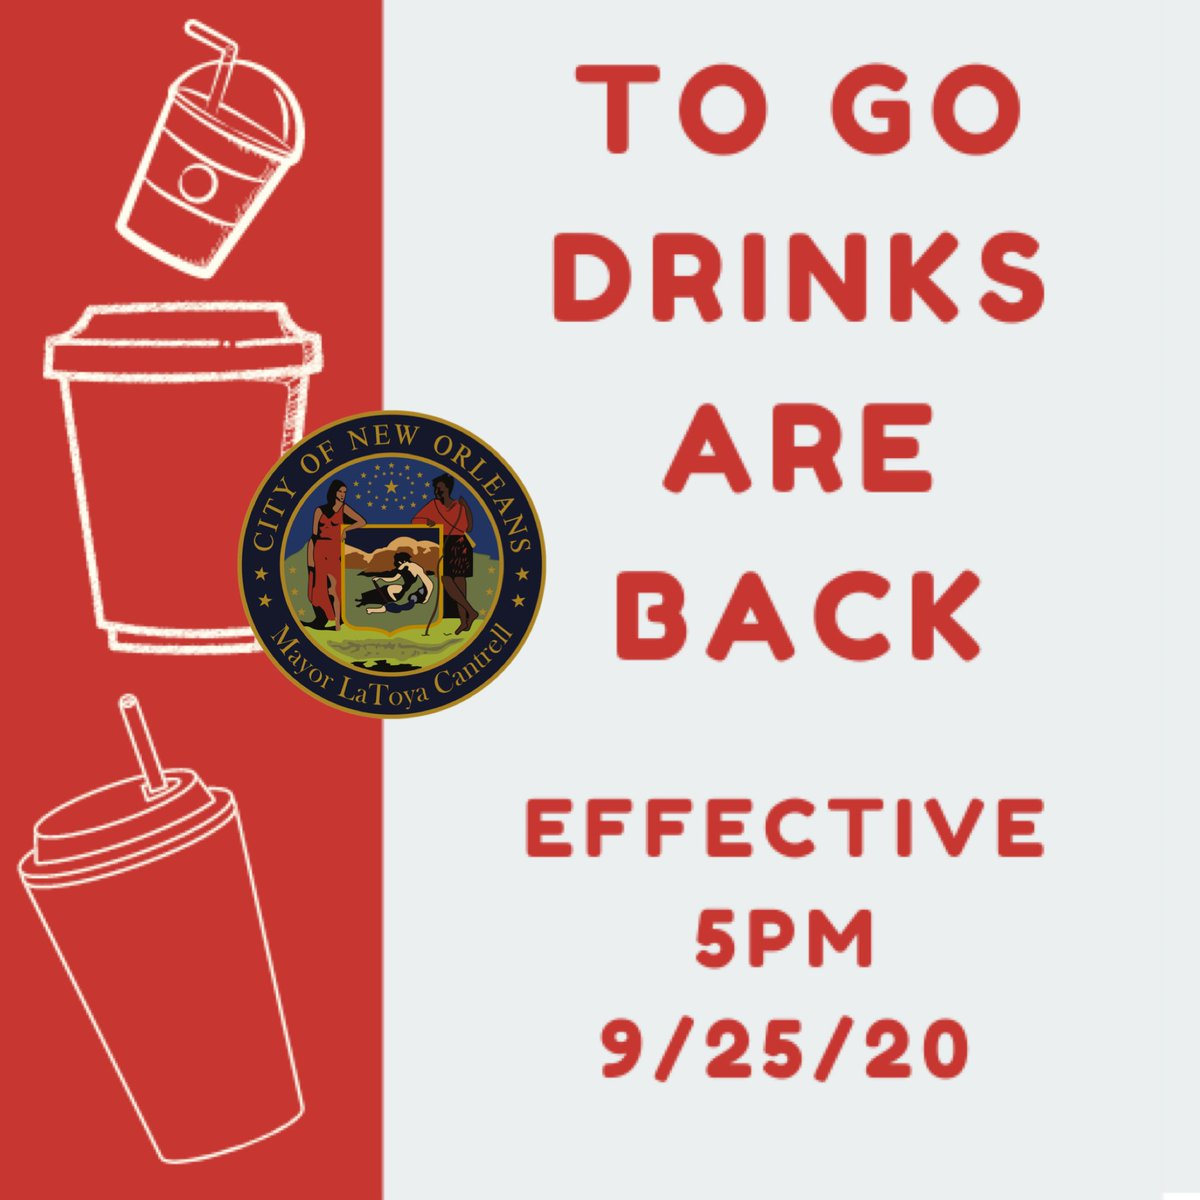 Effective 5 pm tonight, restaurants in Orleans Parish may resume serving alcoholic beverages through drive-thru, takeout and curbside pickup options between the hours of 8 a.m. and 11 p.m. See updated guidelines at